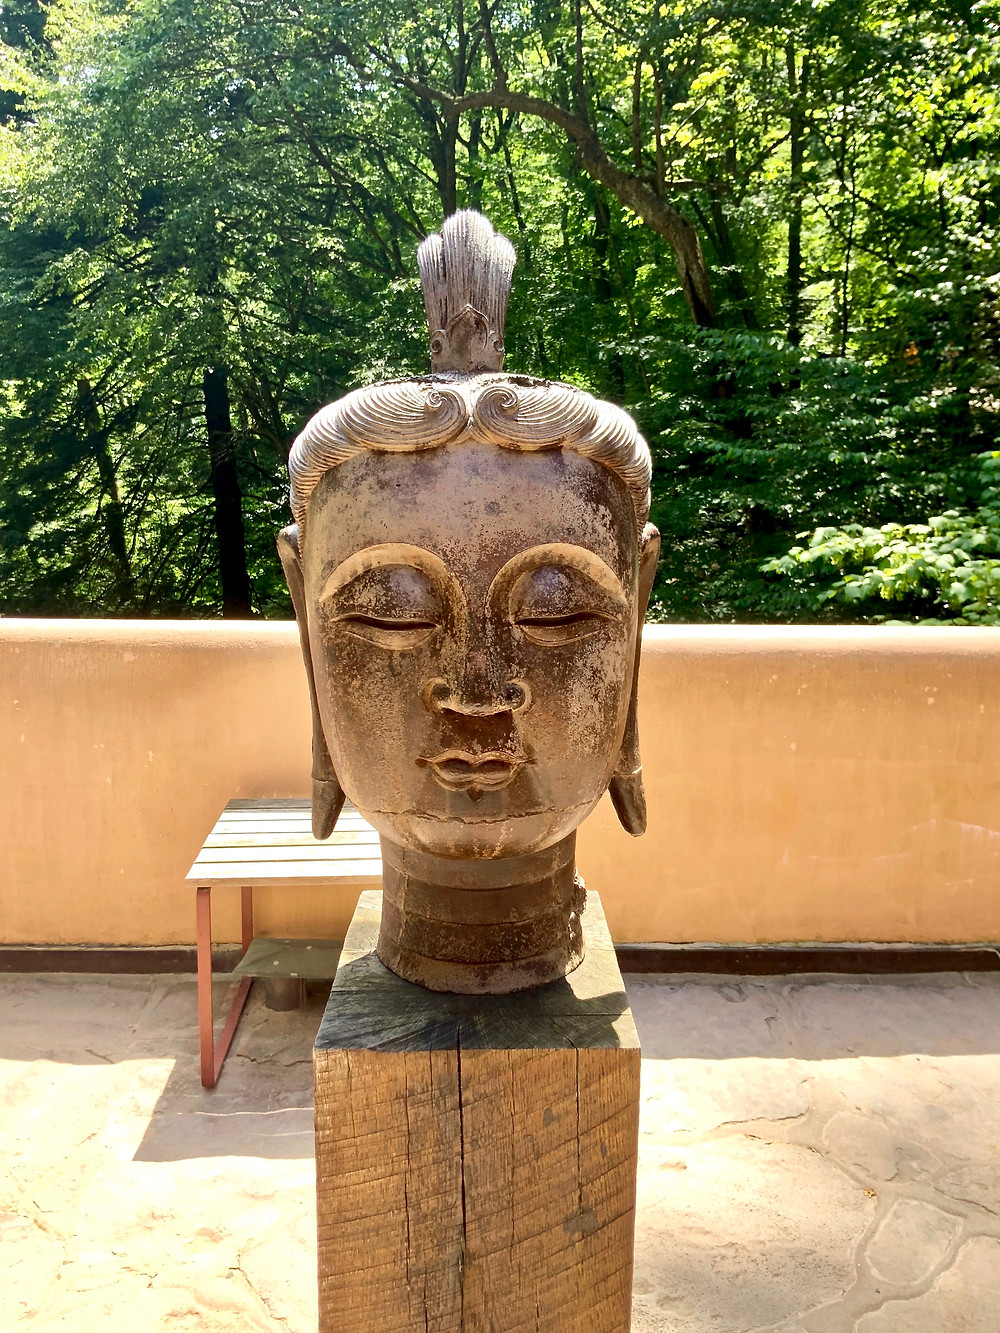 On the first floor terrace, there's a head of Buddha. It was cast in iron during the Sung Dynasty, between 906 and 1127.